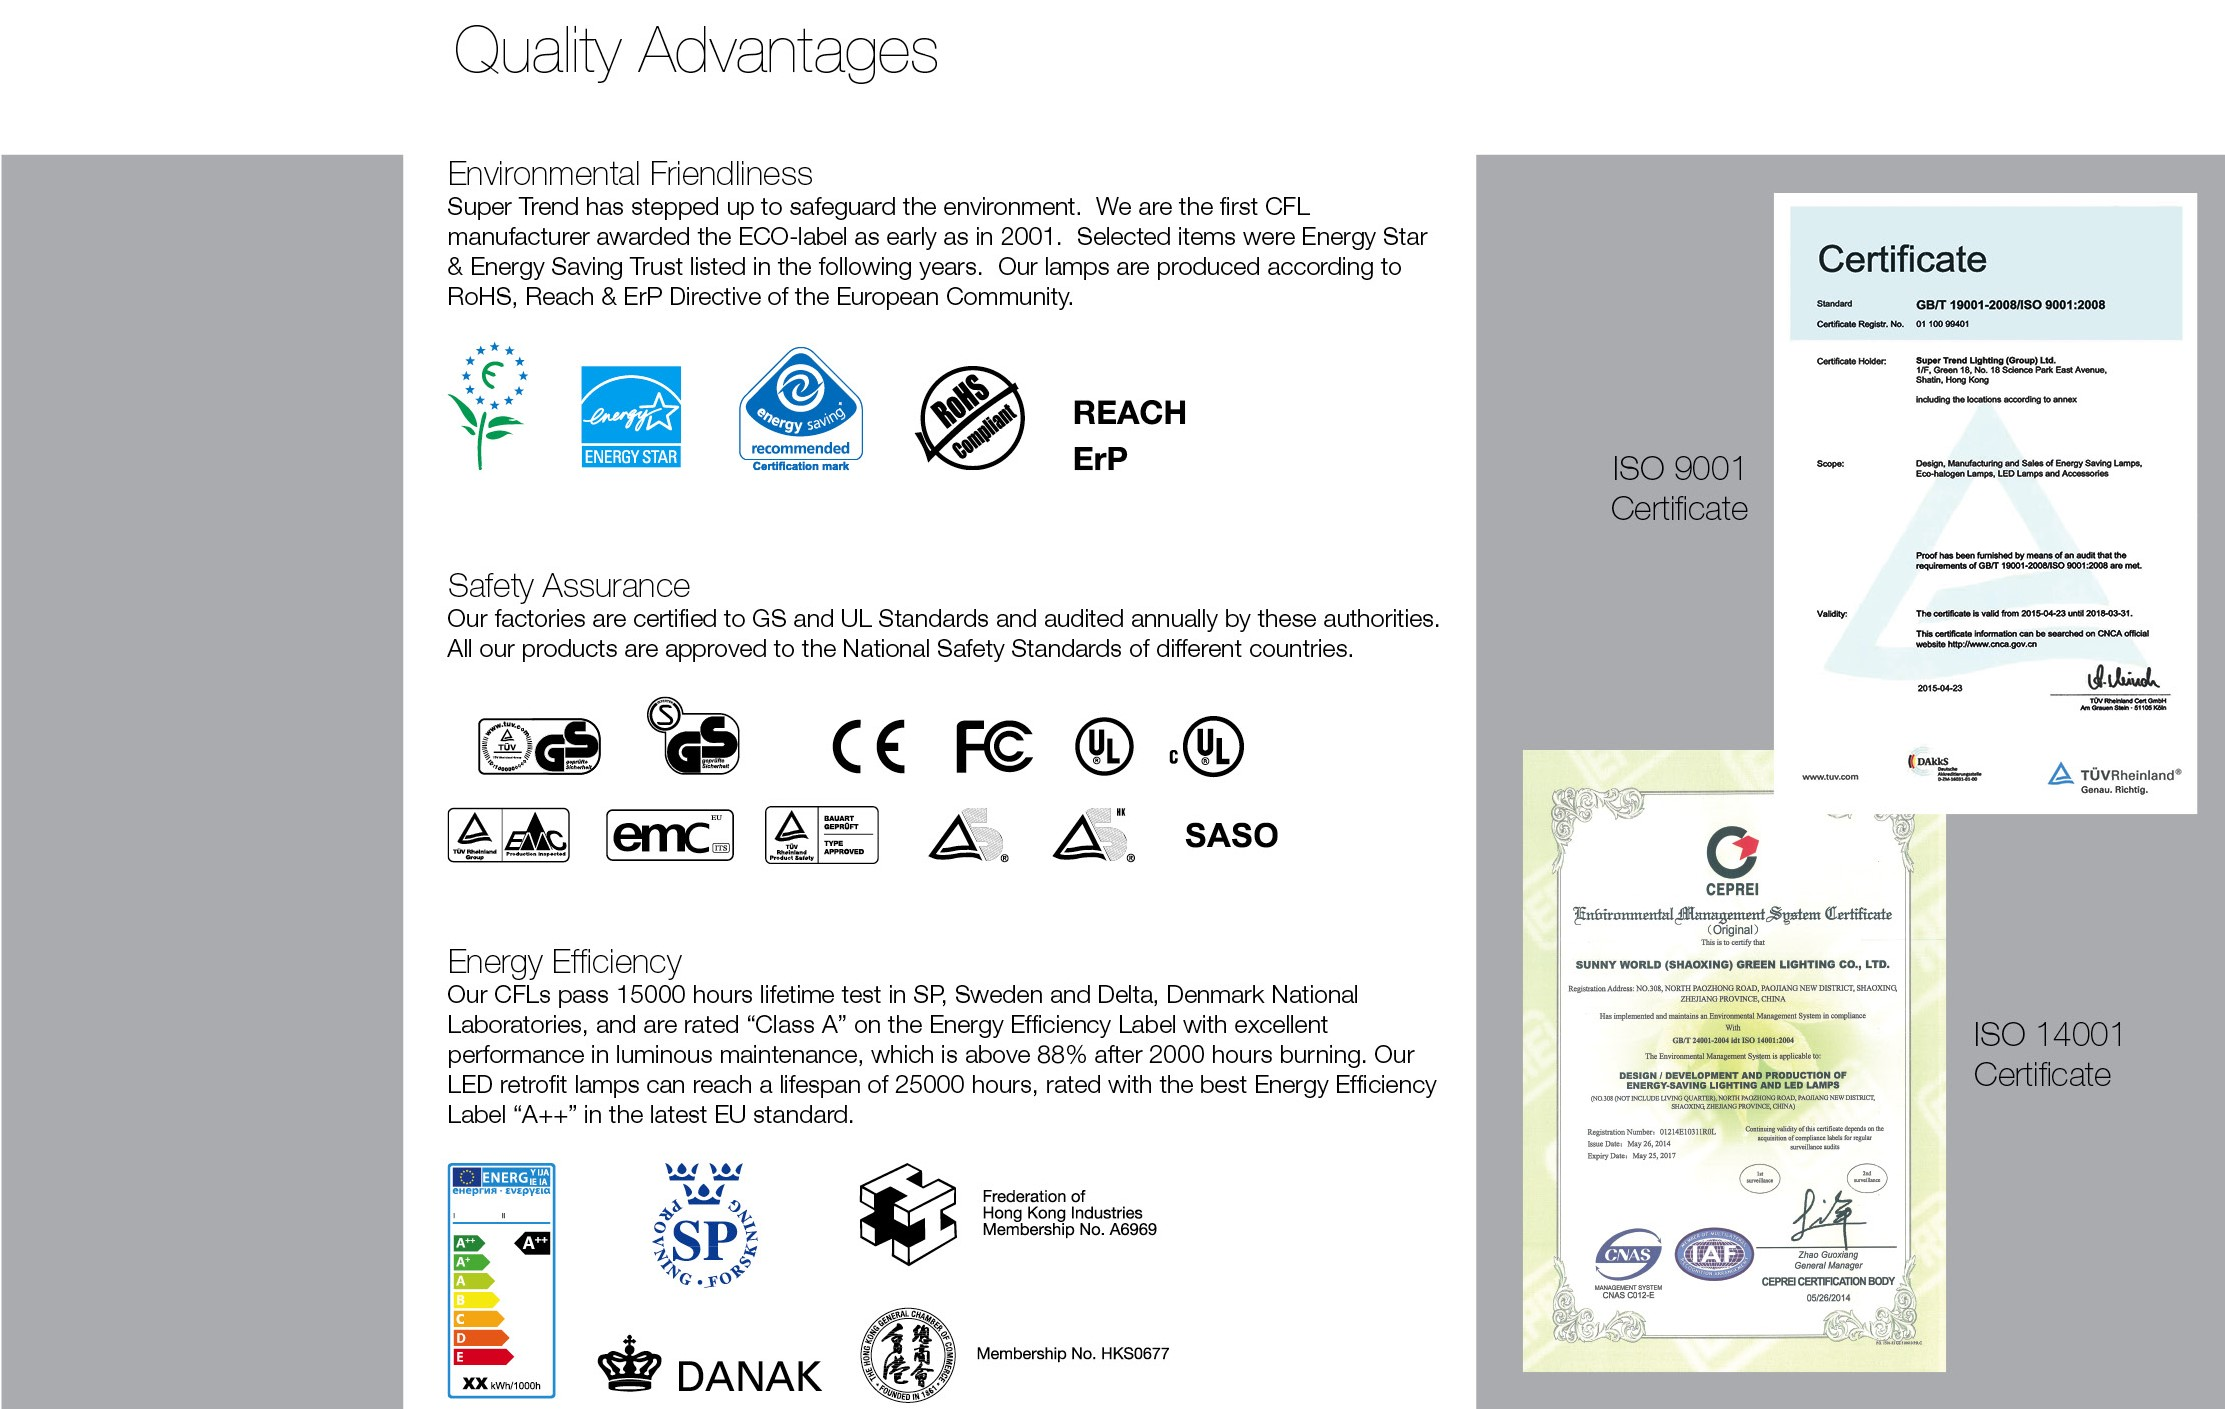 ST Catalogue 2016 Certifications